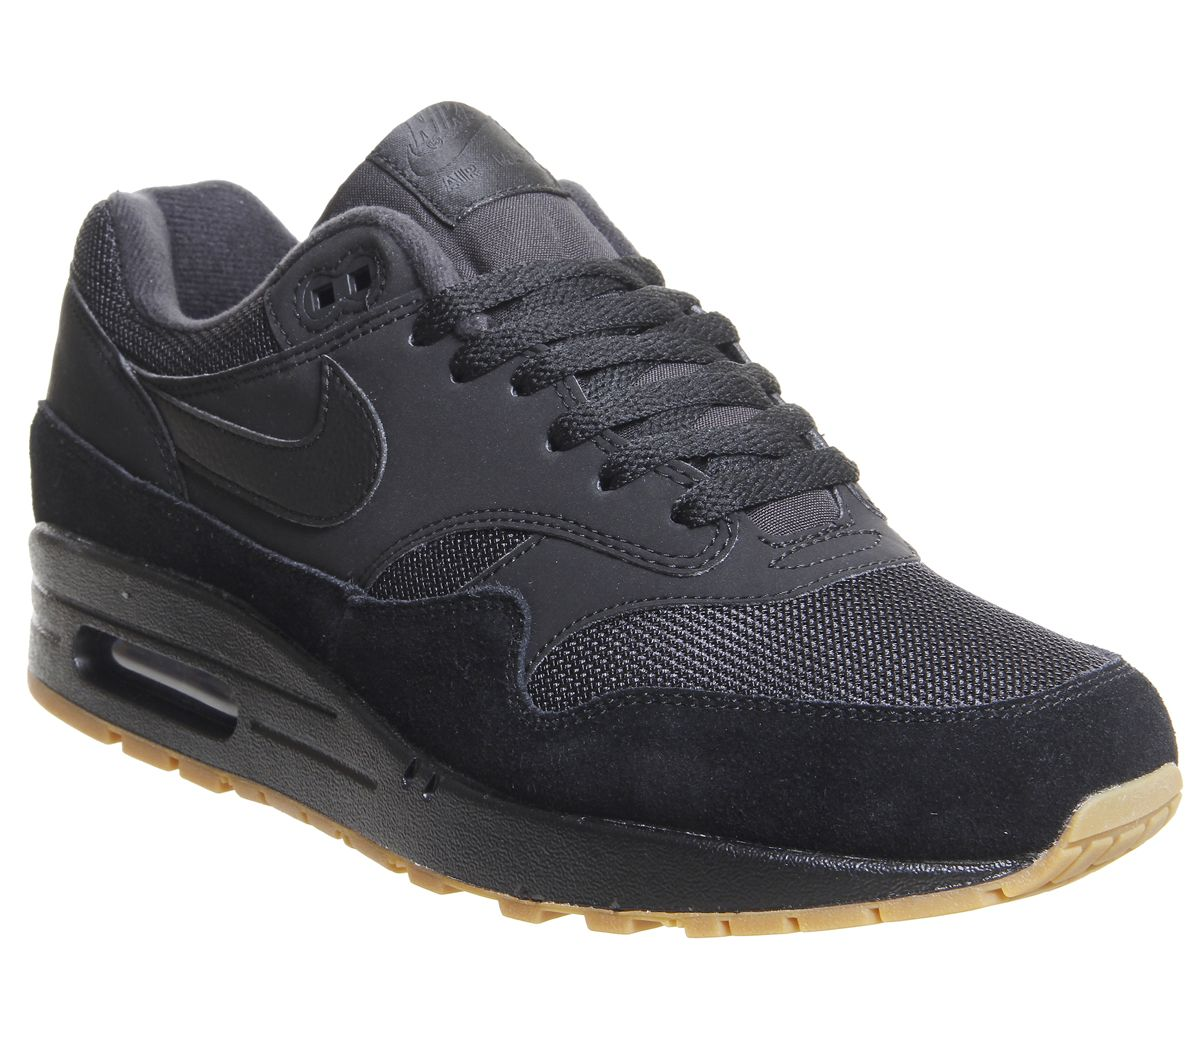 0abe8e1166 Nike Air Max 1 Trainers Black Black Gum Medium Brown - His trainers